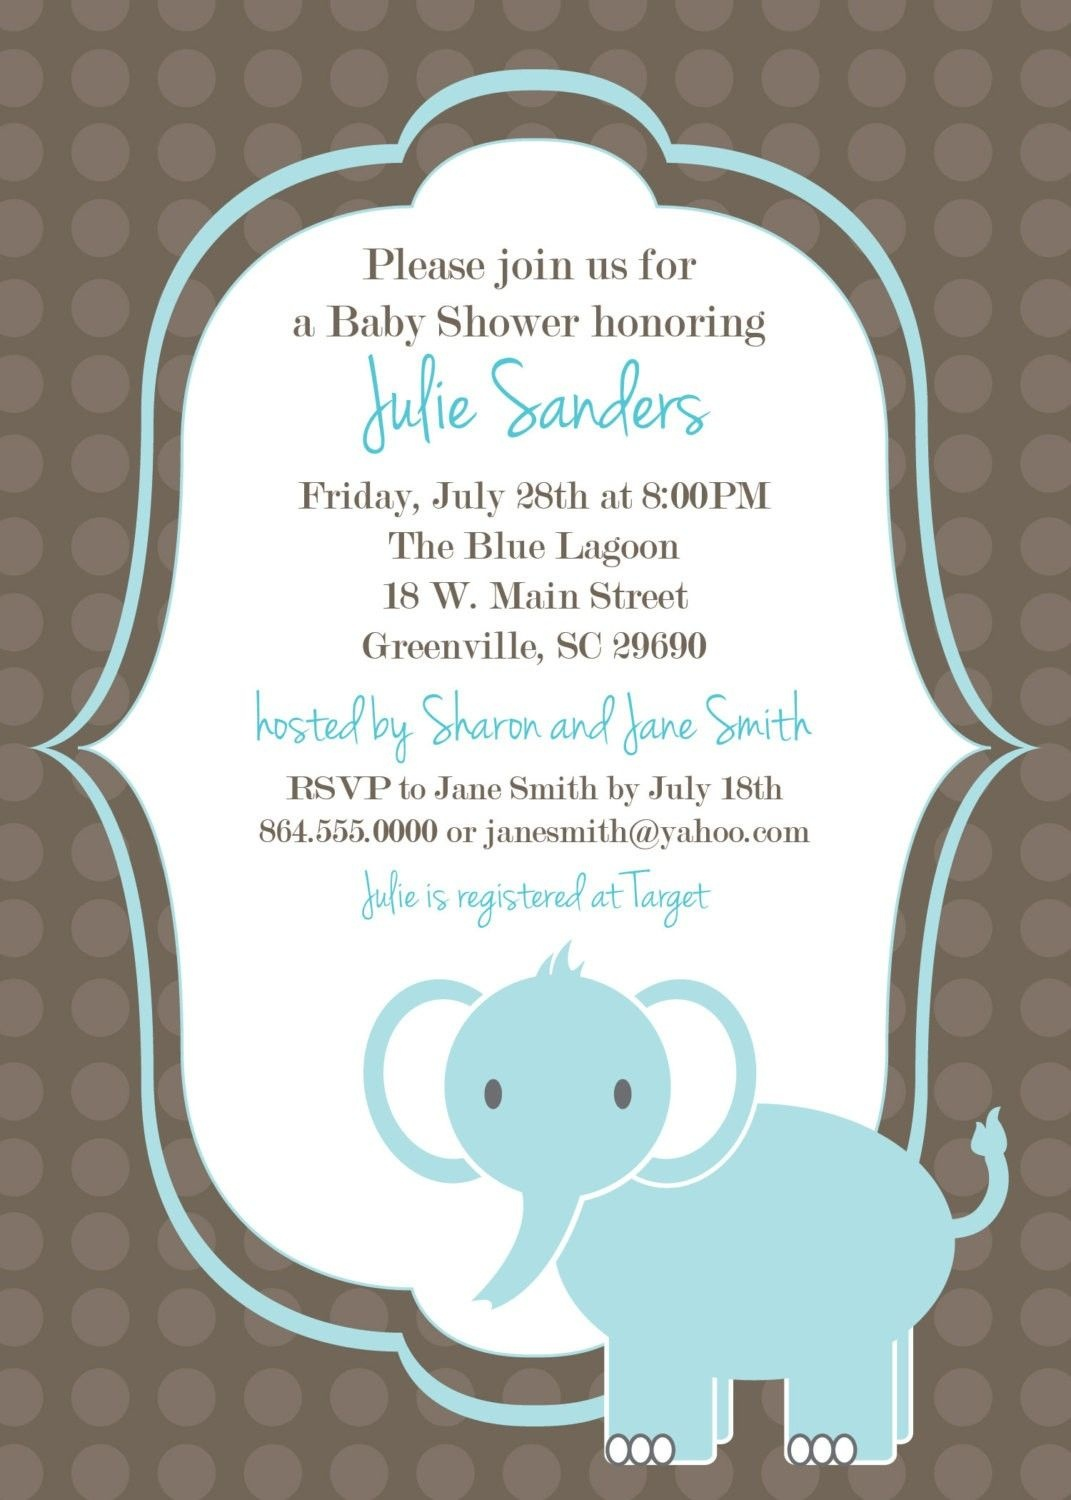 Download Free Template Got The Free Baby Shower Invitations - Make Baby Shower Invitations Online Free Printable